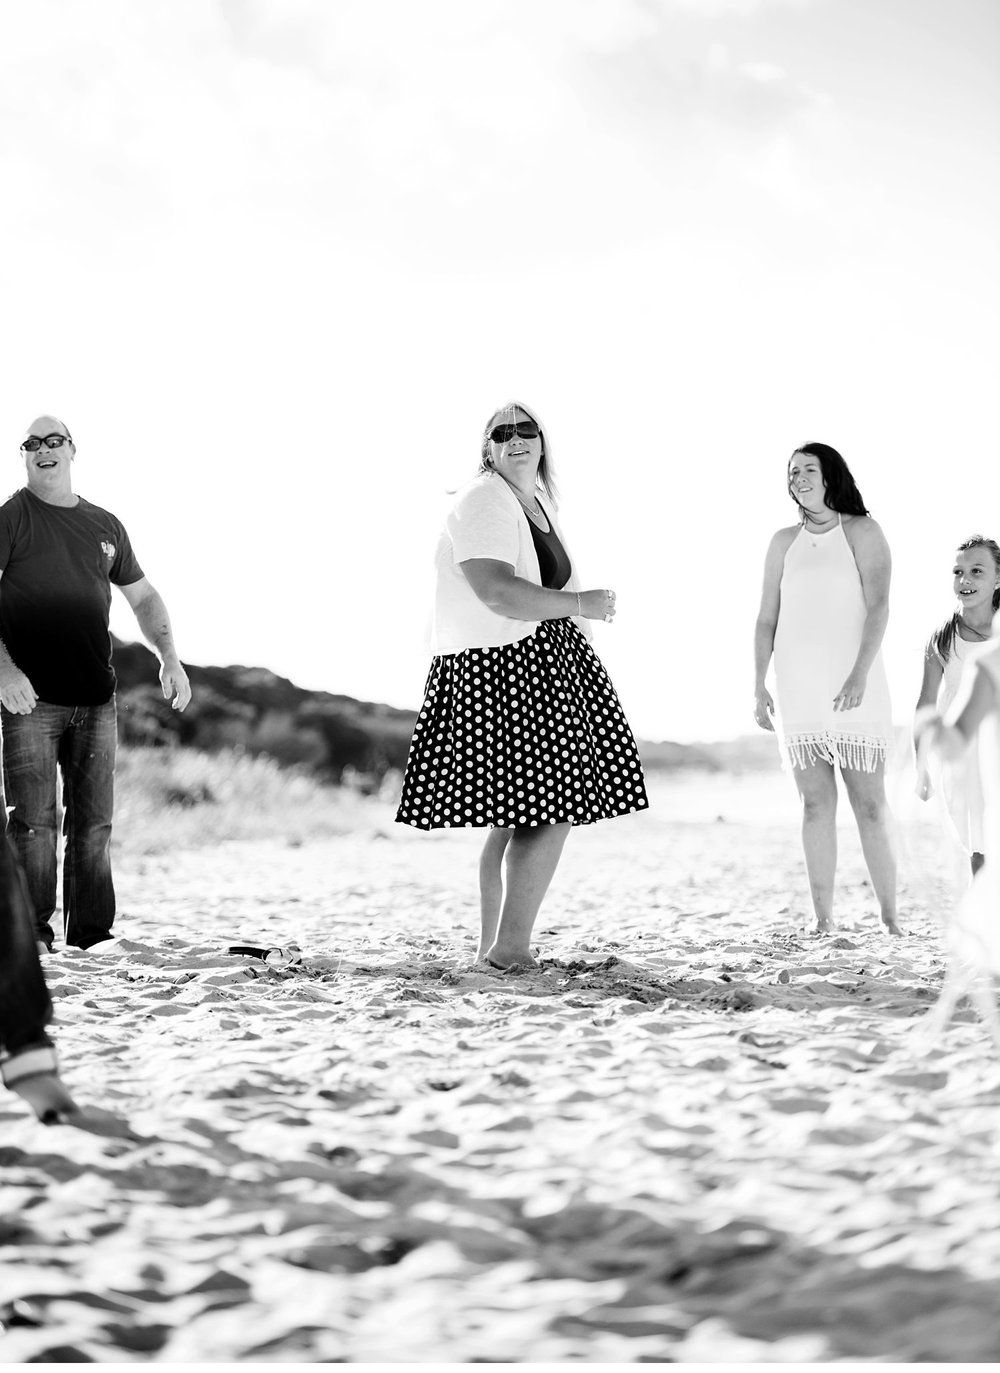 bec-stewart-photography-extended-family-photography-session-melbourne-australia-city-of-casey-40.jpg